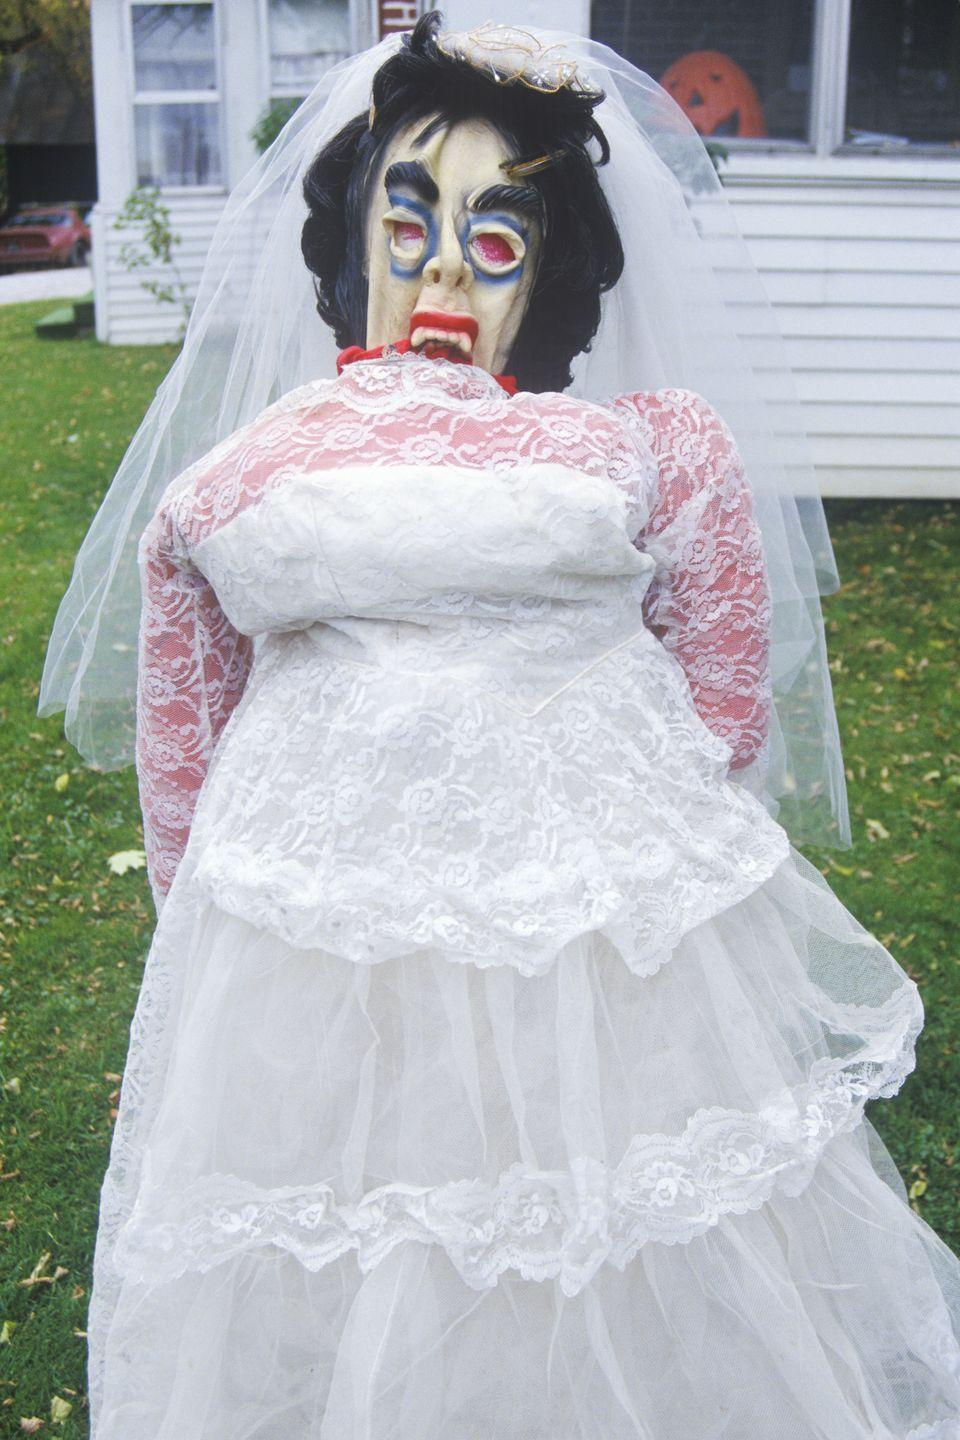 "<p>A scary bride sits on a lawn in New England in the early 1990s, ready to ward off any Halloween pranksters. </p><p><strong>BUY</strong>: <a href=""https://www.amazon.com/Lifesize-Haunting-Zombie-Halloween-Decoration/dp/B074CPNZN4"" rel=""nofollow noopener"" target=""_blank"" data-ylk=""slk:Zombie Bride"" class=""link rapid-noclick-resp"">Zombie Bride</a> ($70, Amazon) </p>"